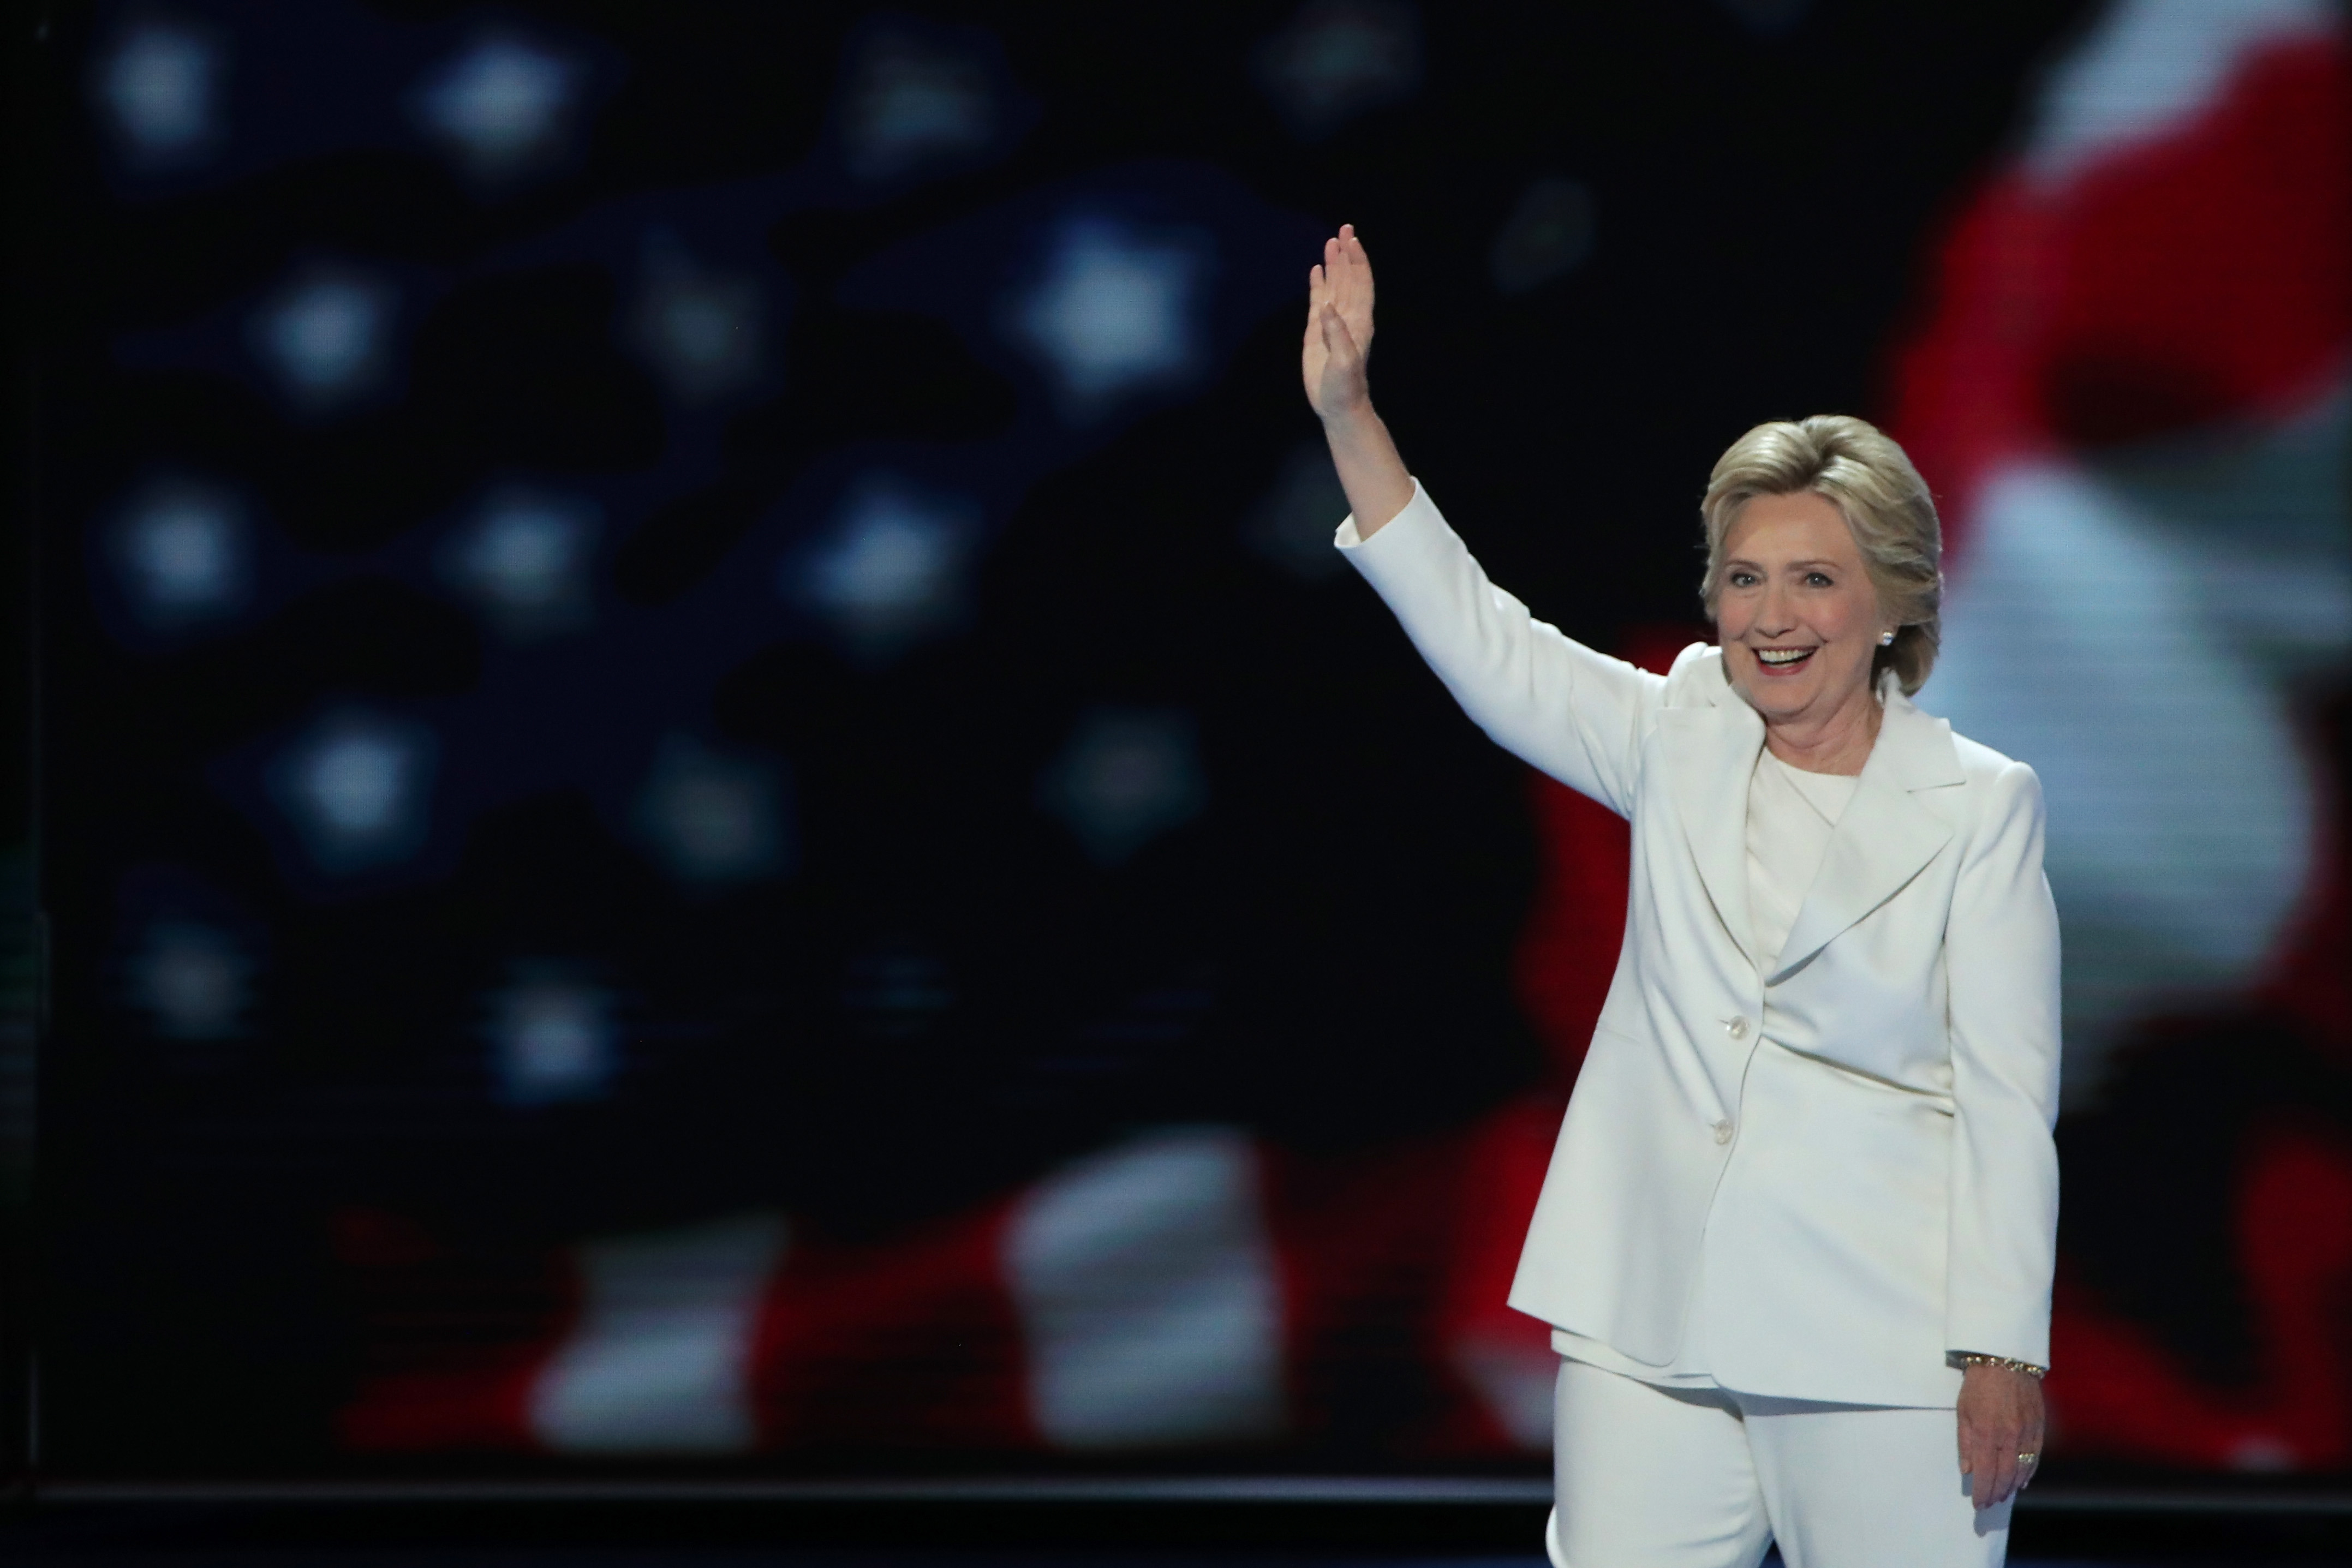 Democratic presidential nominee Hillary Clinton waves to the crowd as she arrives on stage during the fourth day of the Democratic National Convention. (Getty Images)